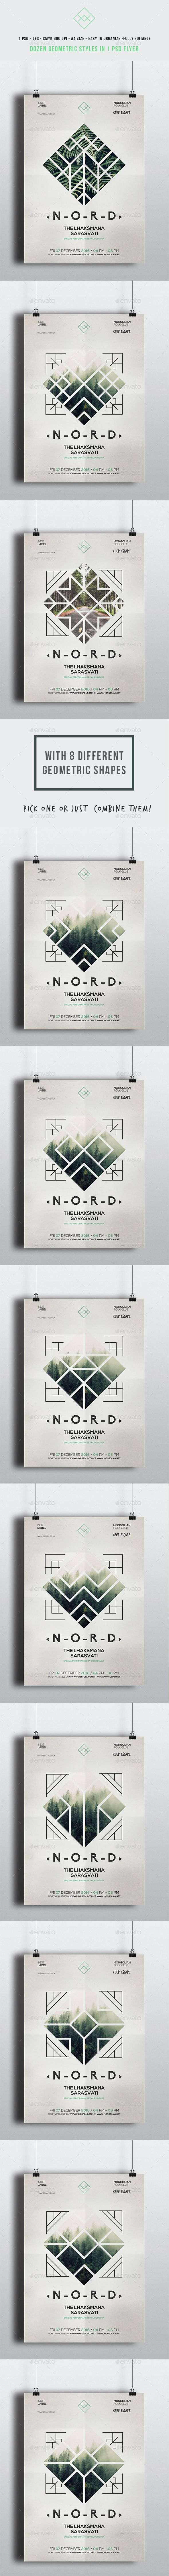 Geometric Alternative Flyer Template PSD. Download here: http://graphicriver.net/item/geometric-alternative-flyer/14578577?ref=ksioks